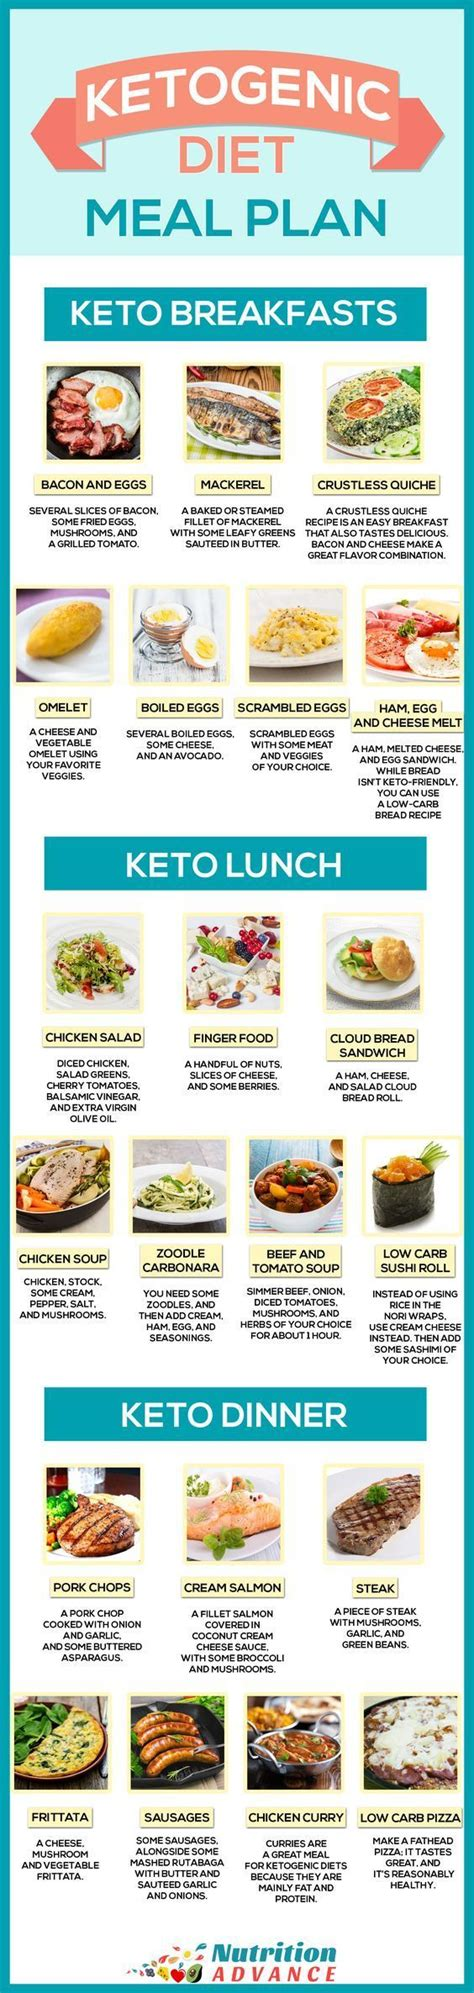 keto diet meals 21 day ketogenic meal plan for weight loss books 25 best ideas about lchf meal plan on